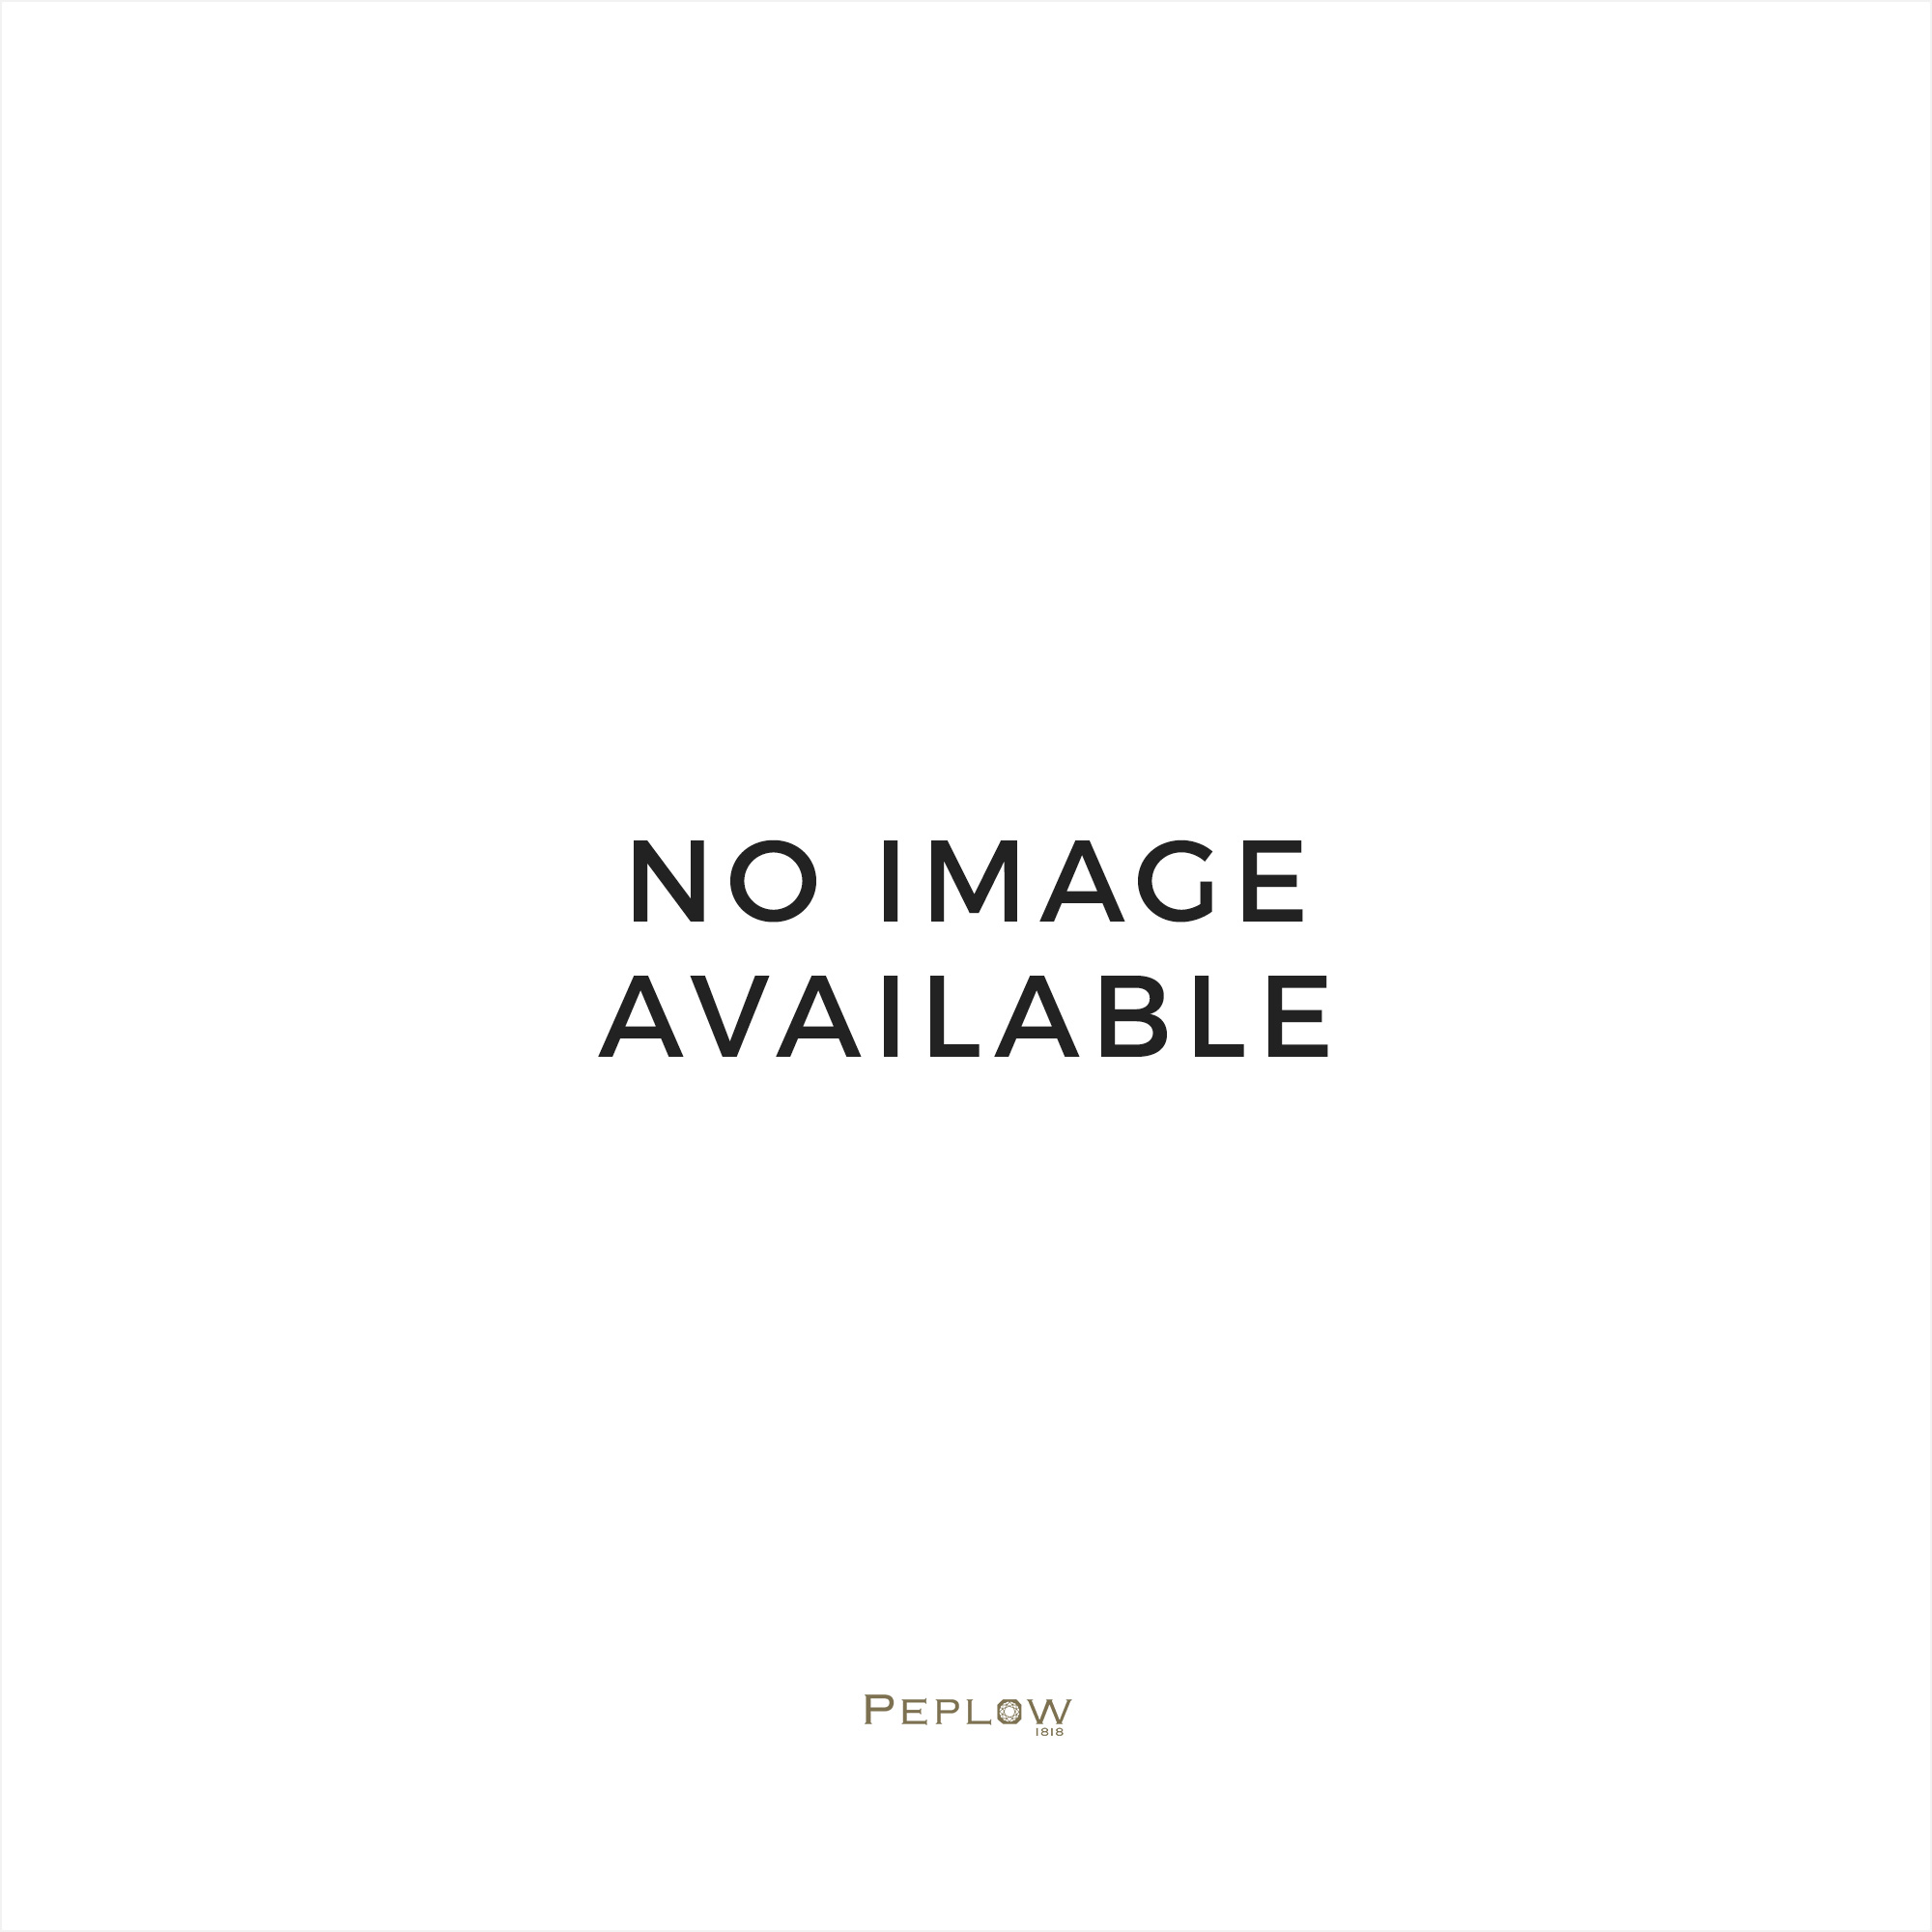 Grand Seiko Watches Grand Seiko Gents Automatic Watch SBGM031G